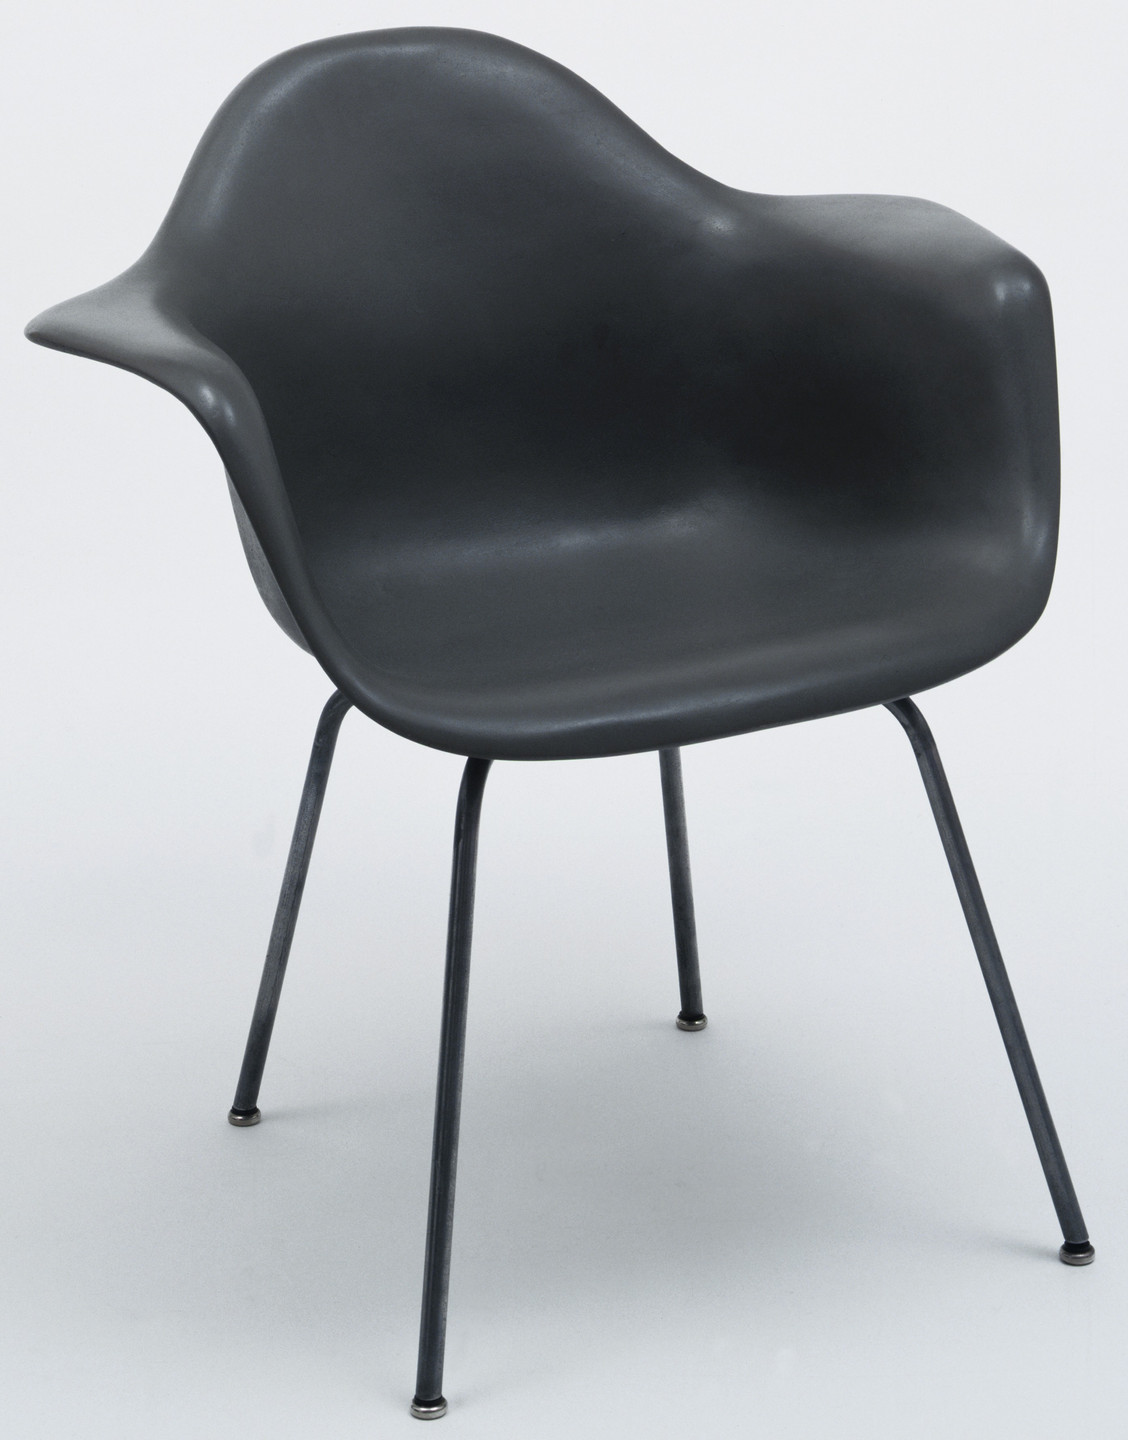 Charles Eames, Ray Eames, University of California Los Angeles Team. Prototype for Armchair. 1948